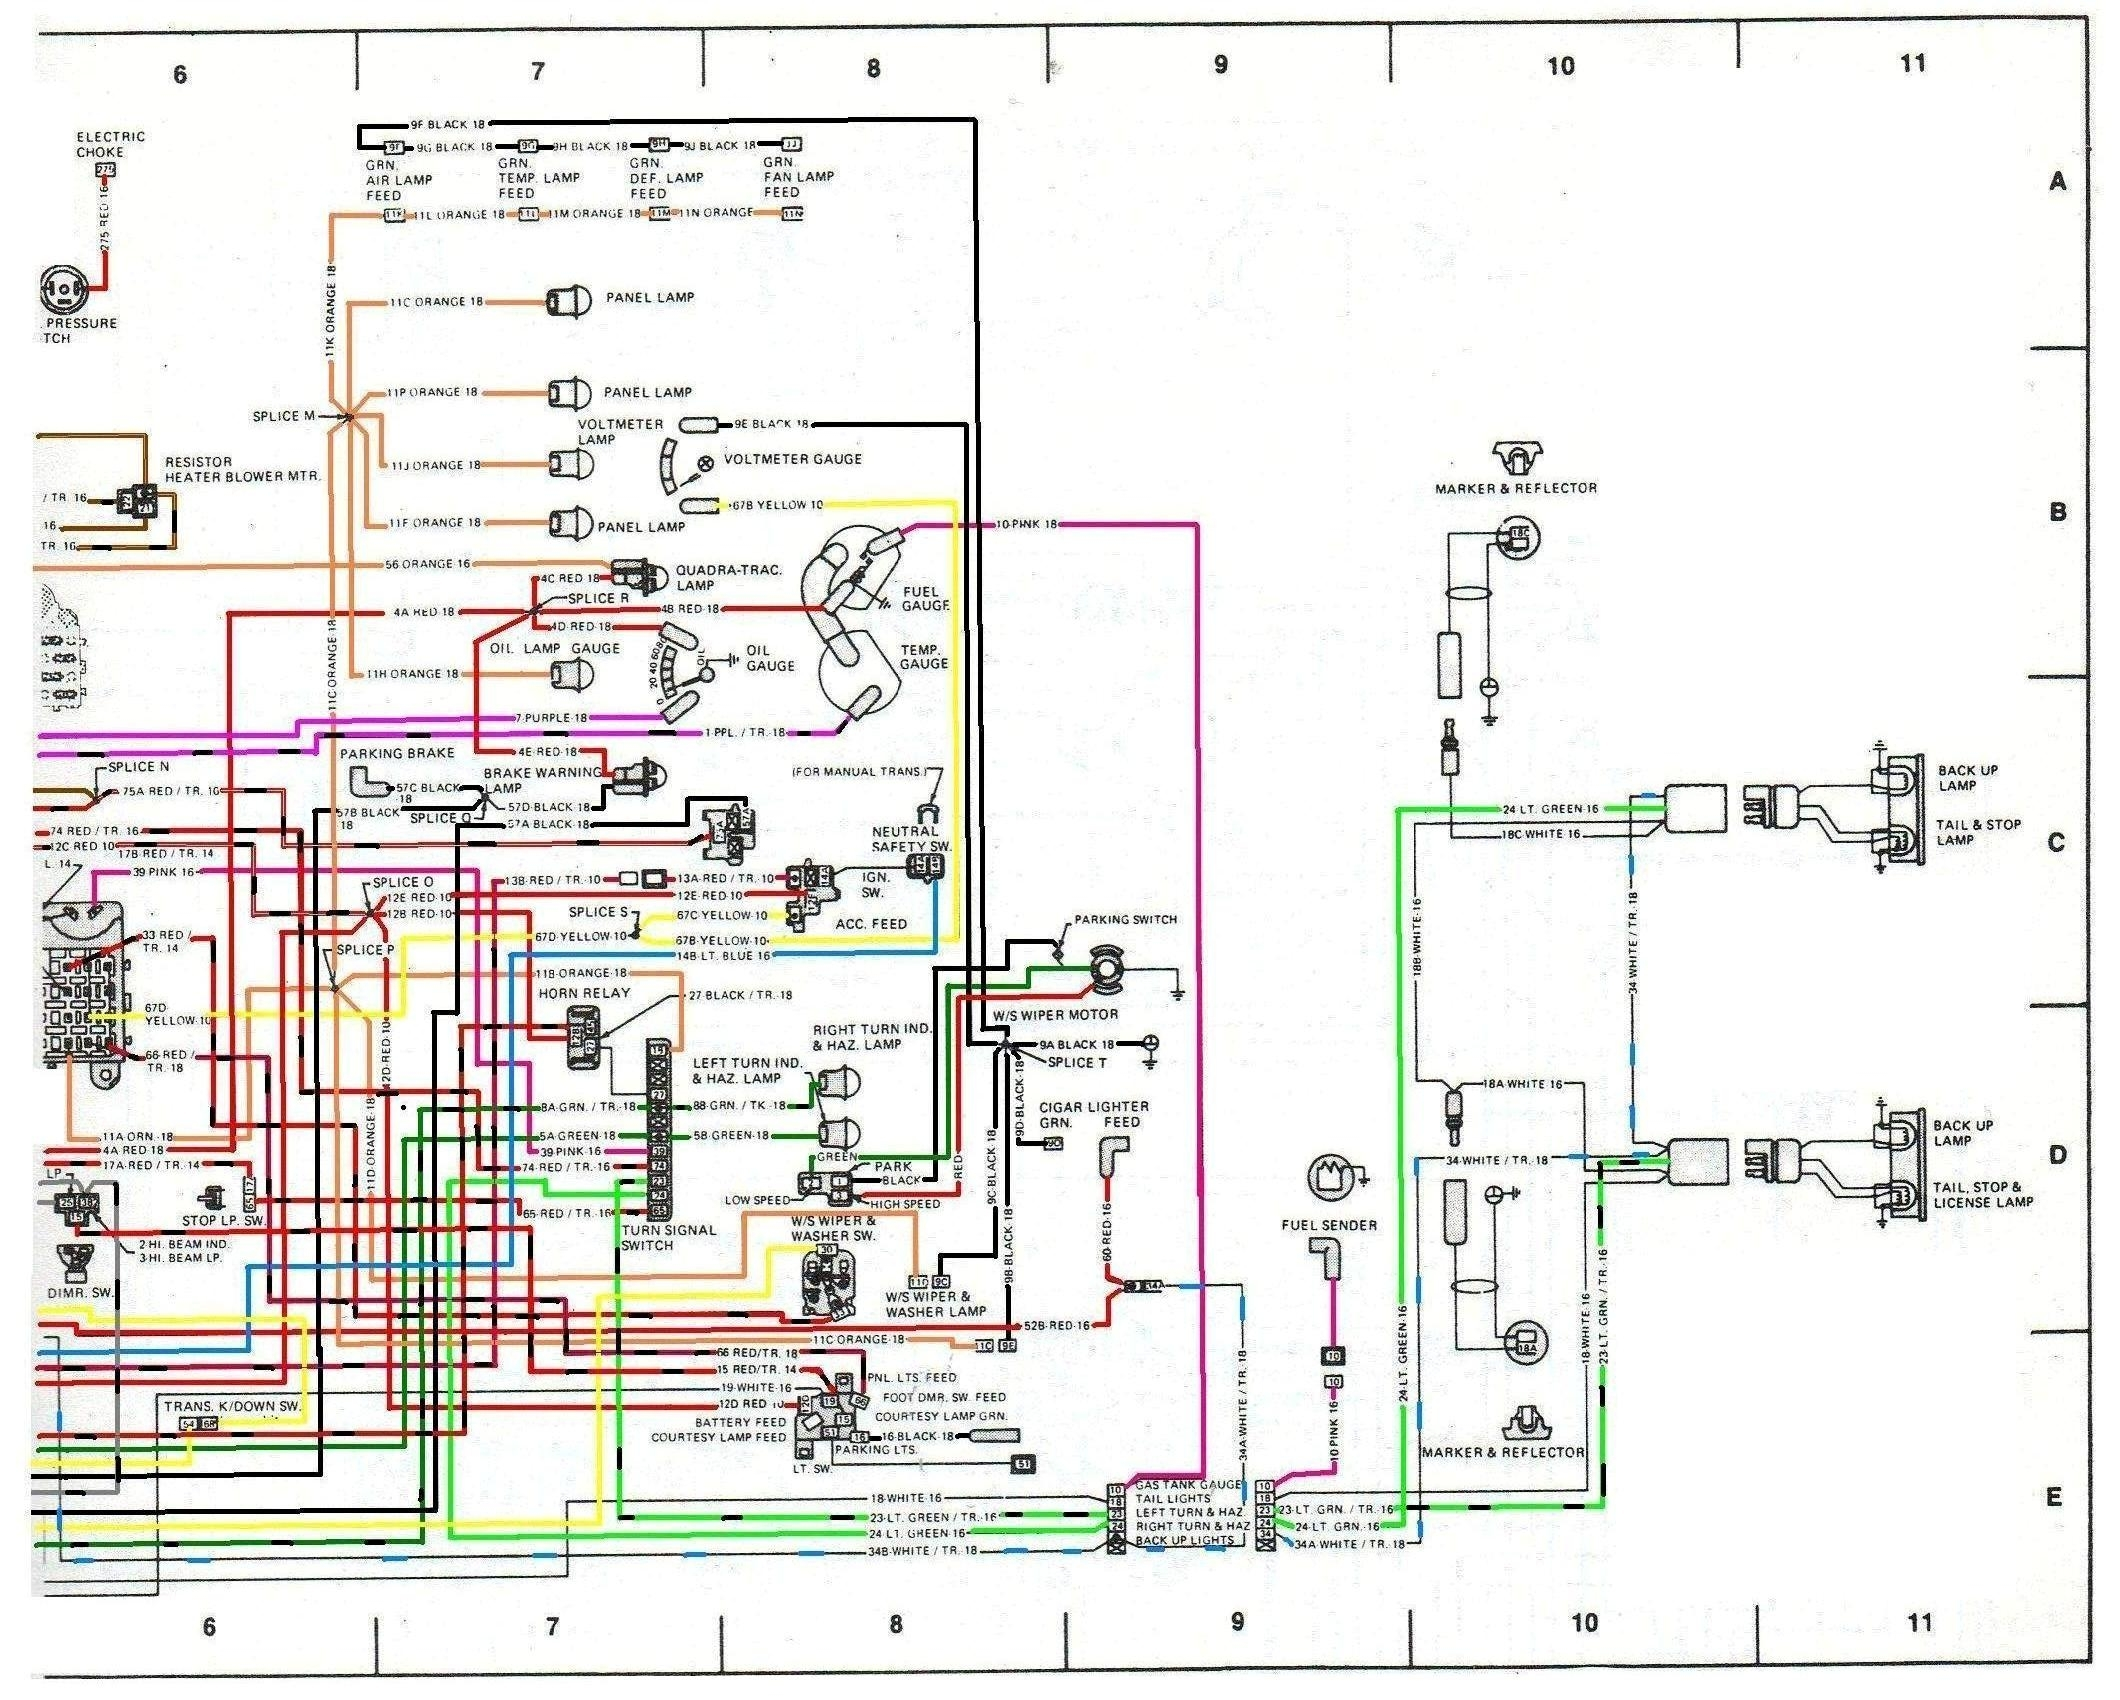 Wiring Diagram For 1979 Jeep Cj7 Engine | Wiring Diagram on 1979 f250 wiring diagram, 1979 bronco wiring diagram, 1979 corolla wiring diagram, 1979 mustang wiring diagram, 1979 lincoln wiring diagram, 1979 f150 wiring diagram, 1979 blazer wiring diagram, 1979 f100 wiring diagram, 1979 silverado wiring diagram, 1979 malibu wiring diagram, 1979 dodge wiring diagram, 1979 f700 wiring diagram, 1979 suburban wiring diagram,